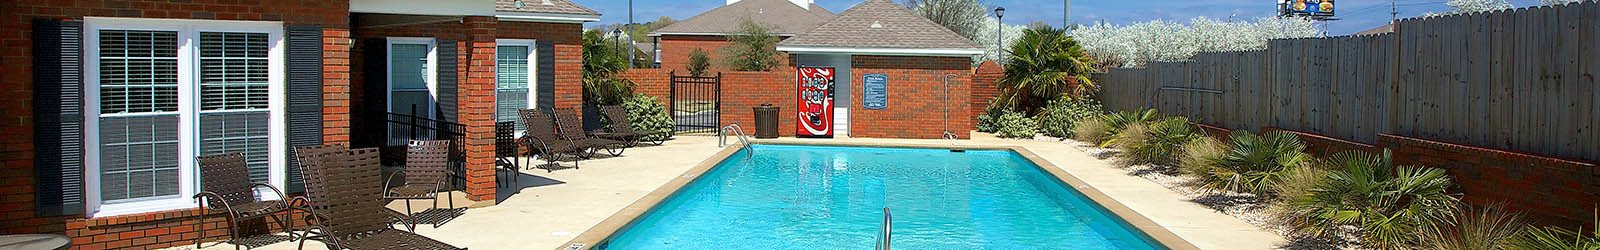 Contact Halcyon Park Apartments for information about our apartments in Montgomery